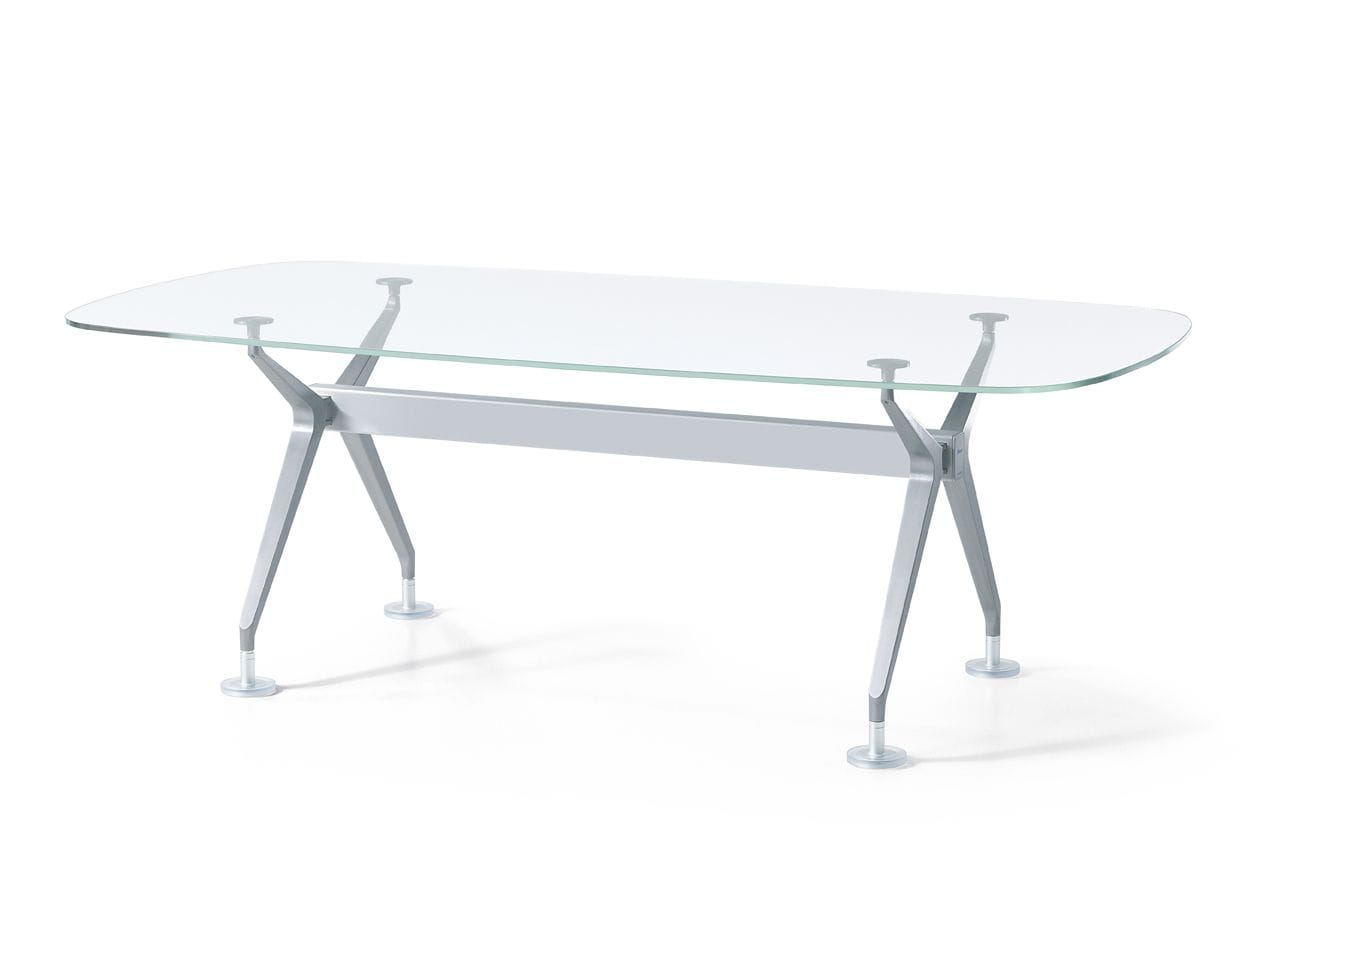 Silver table system by Interstuhl